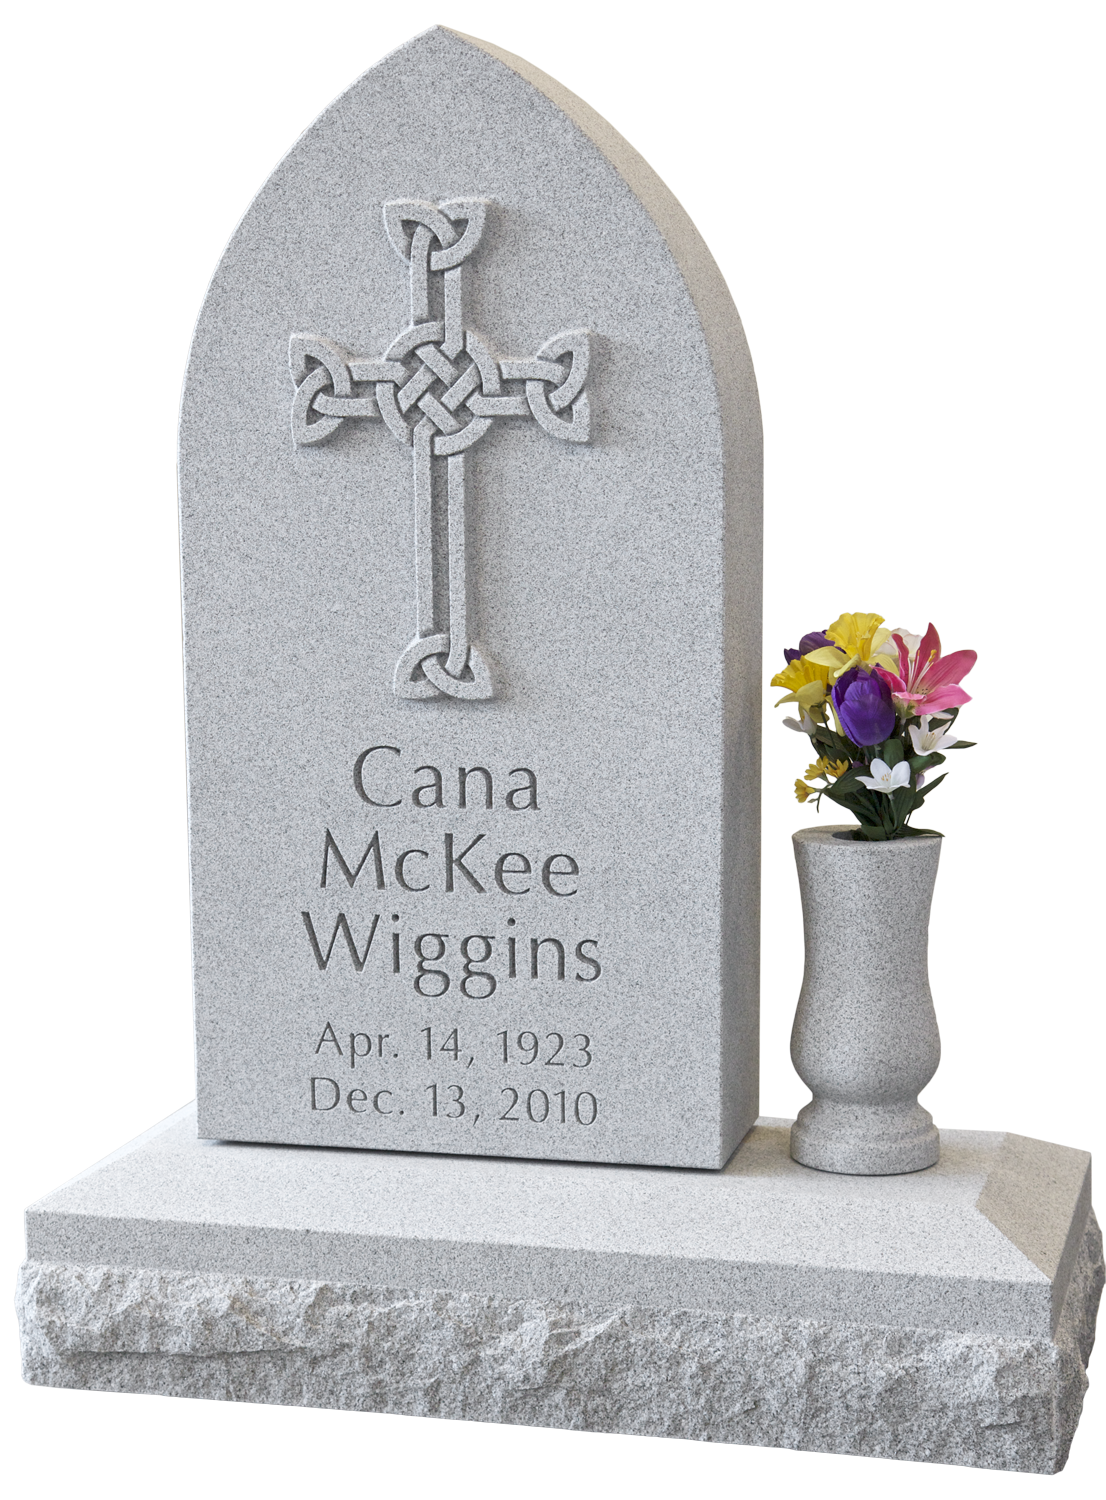 Wiggins, Carolyn Monument.png